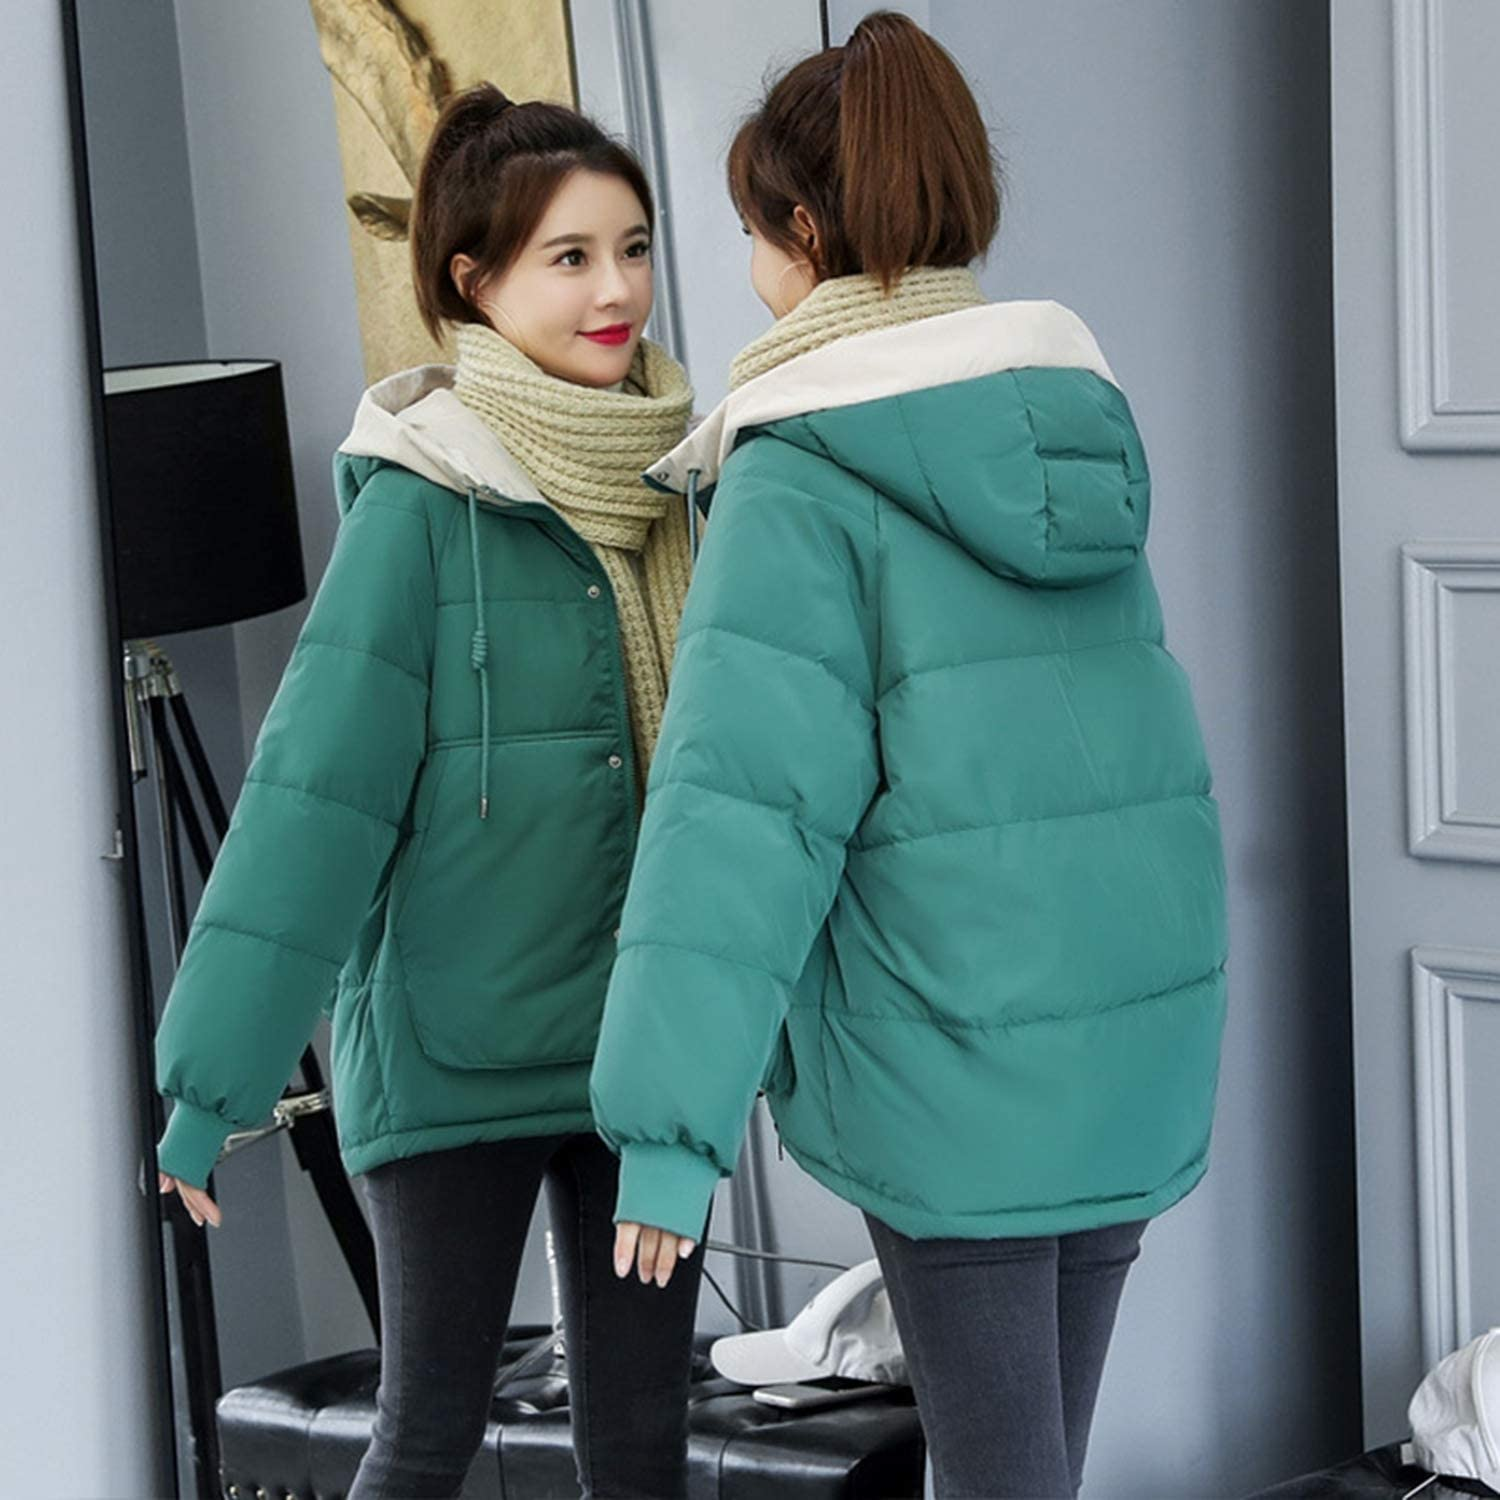 Beautiful-clouds Giacca Invernale Donna Plus Size 3XL Cotone Cappotto Addensare Corto con Cappuccio Outwear Verde